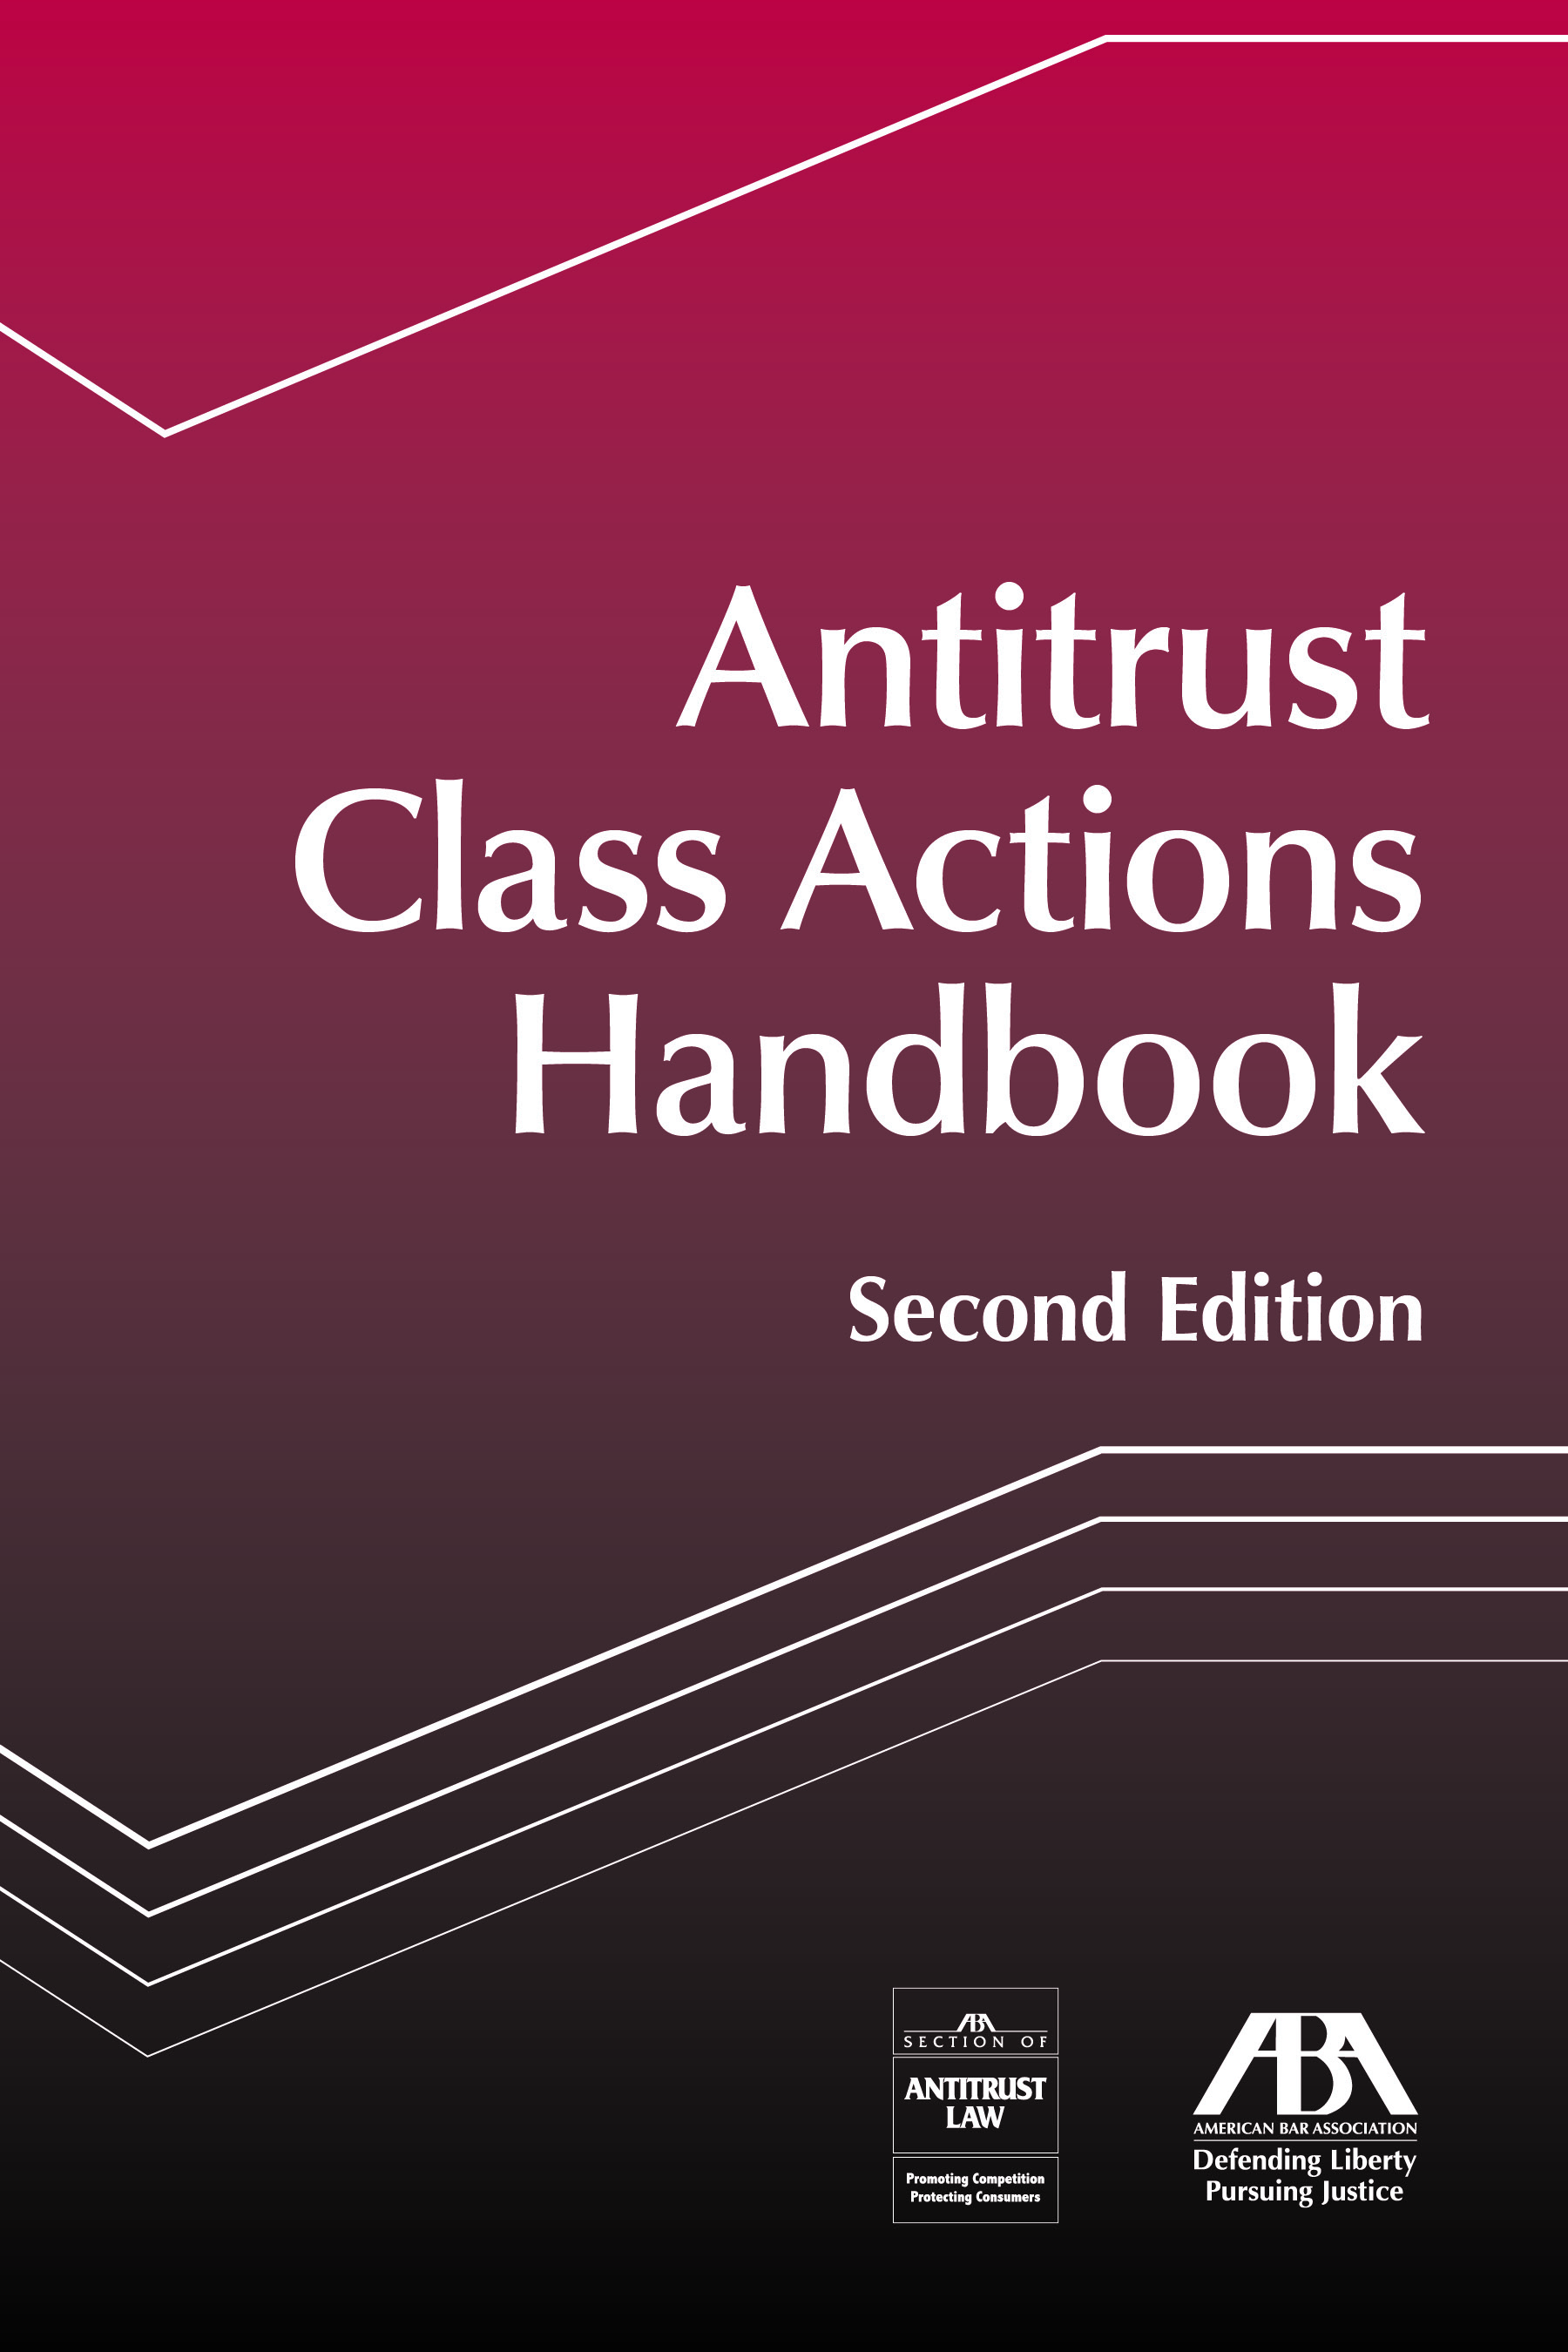 Antitrust Class Actions Handbook, Second Edition